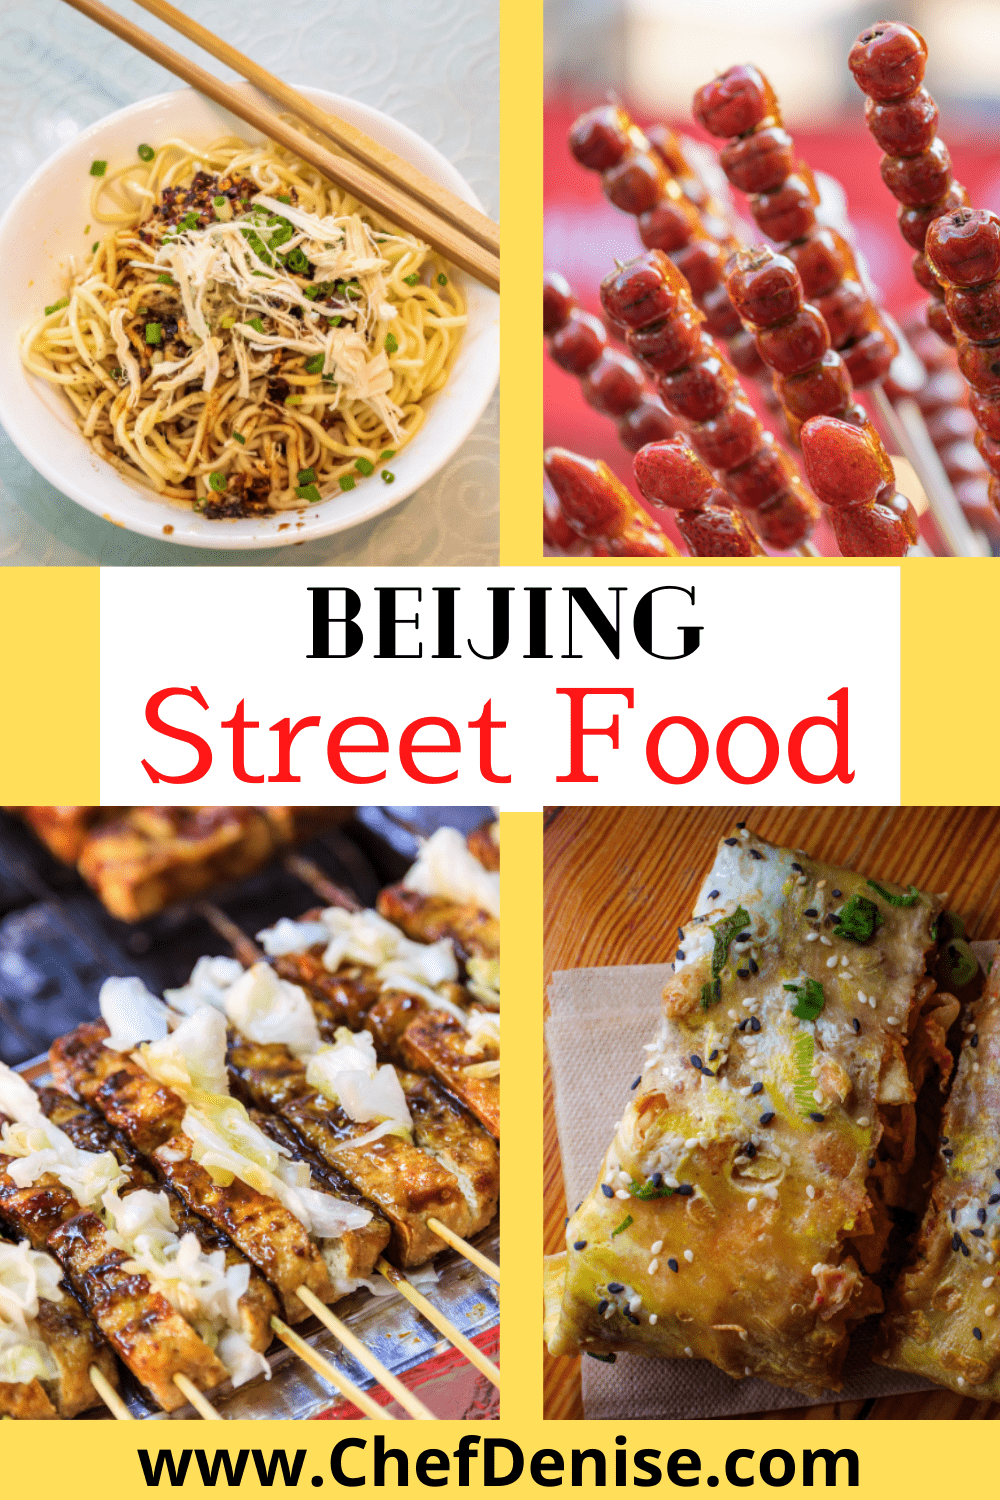 Beijing street food dishes stinky tofu, noodles, hawthorn berries, and jianbing.